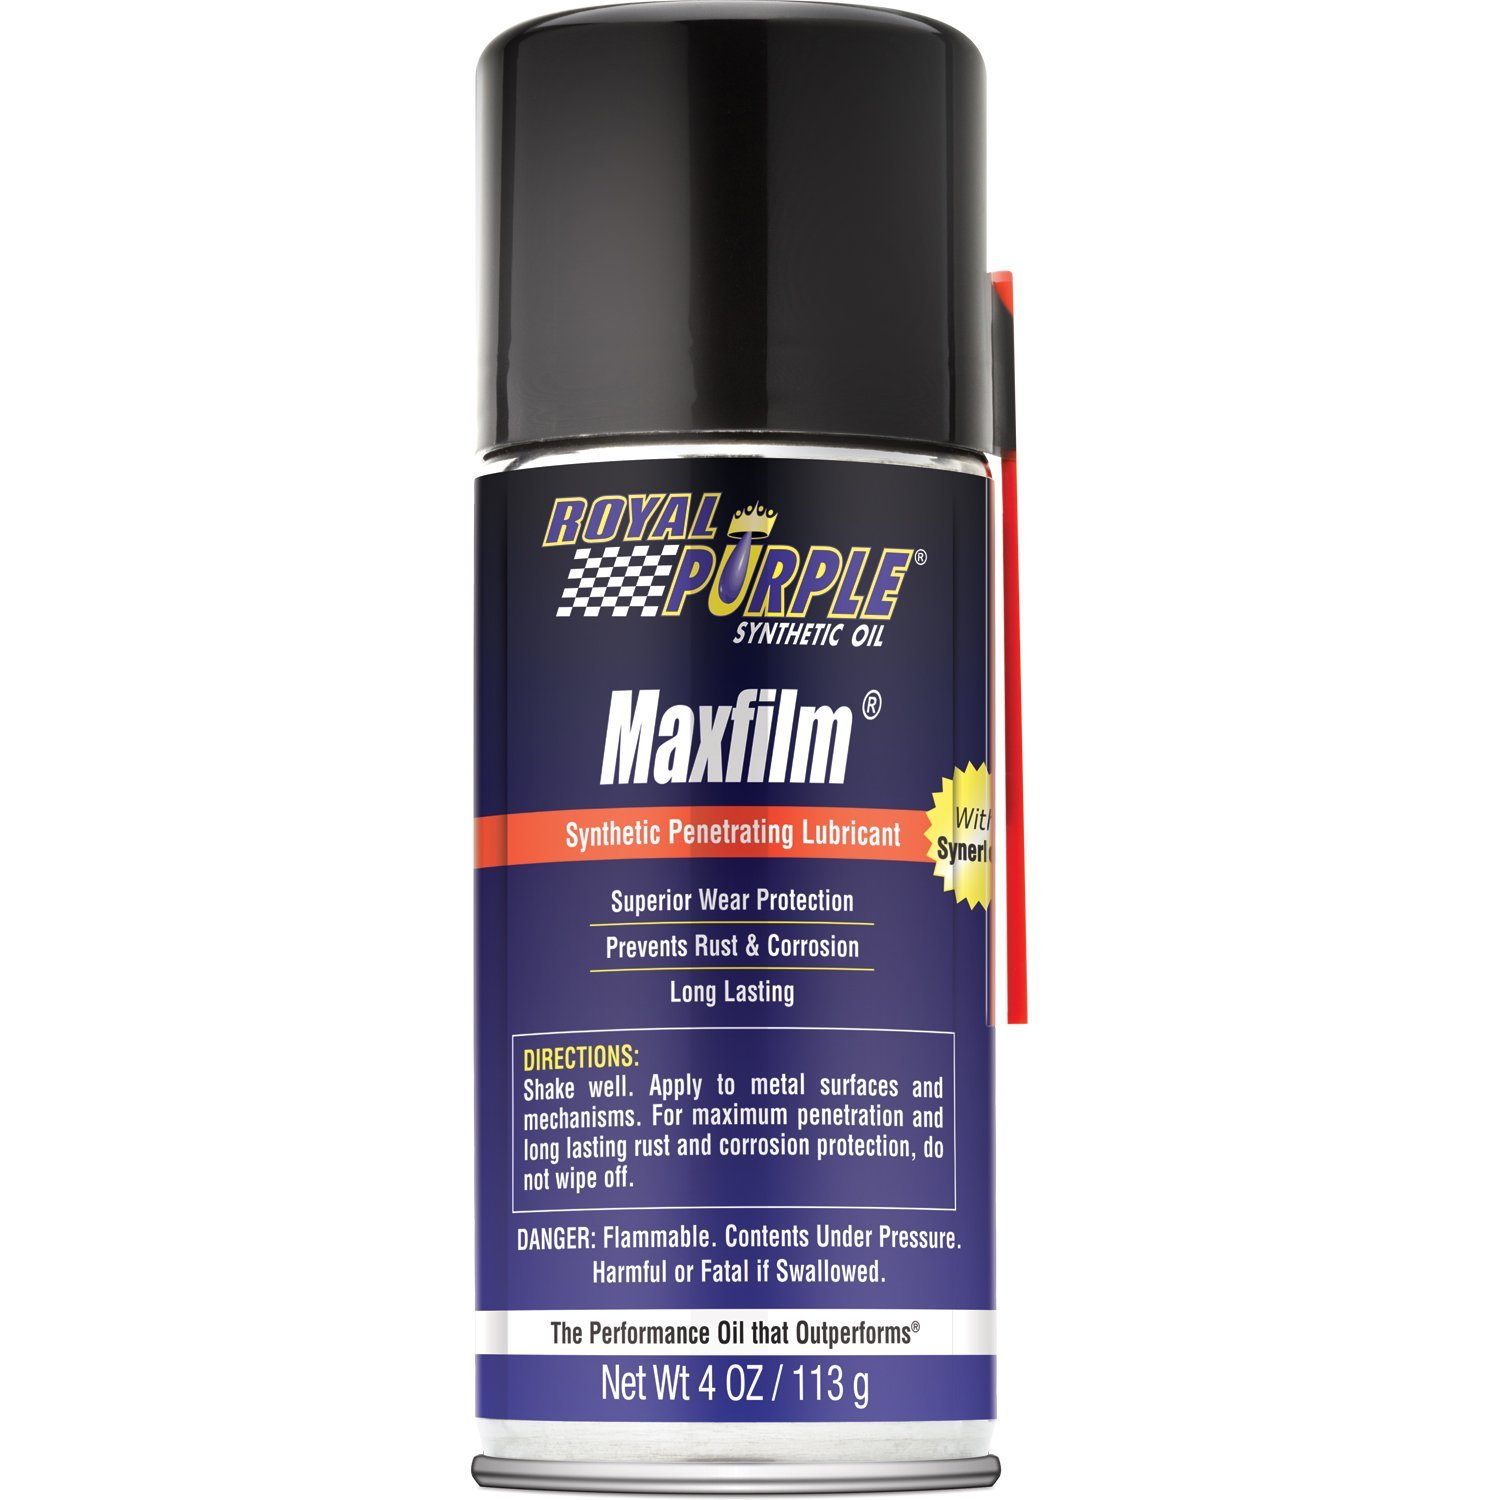 Royal Purple Maxfilm Synthetic Penetrating Lubricant 10035